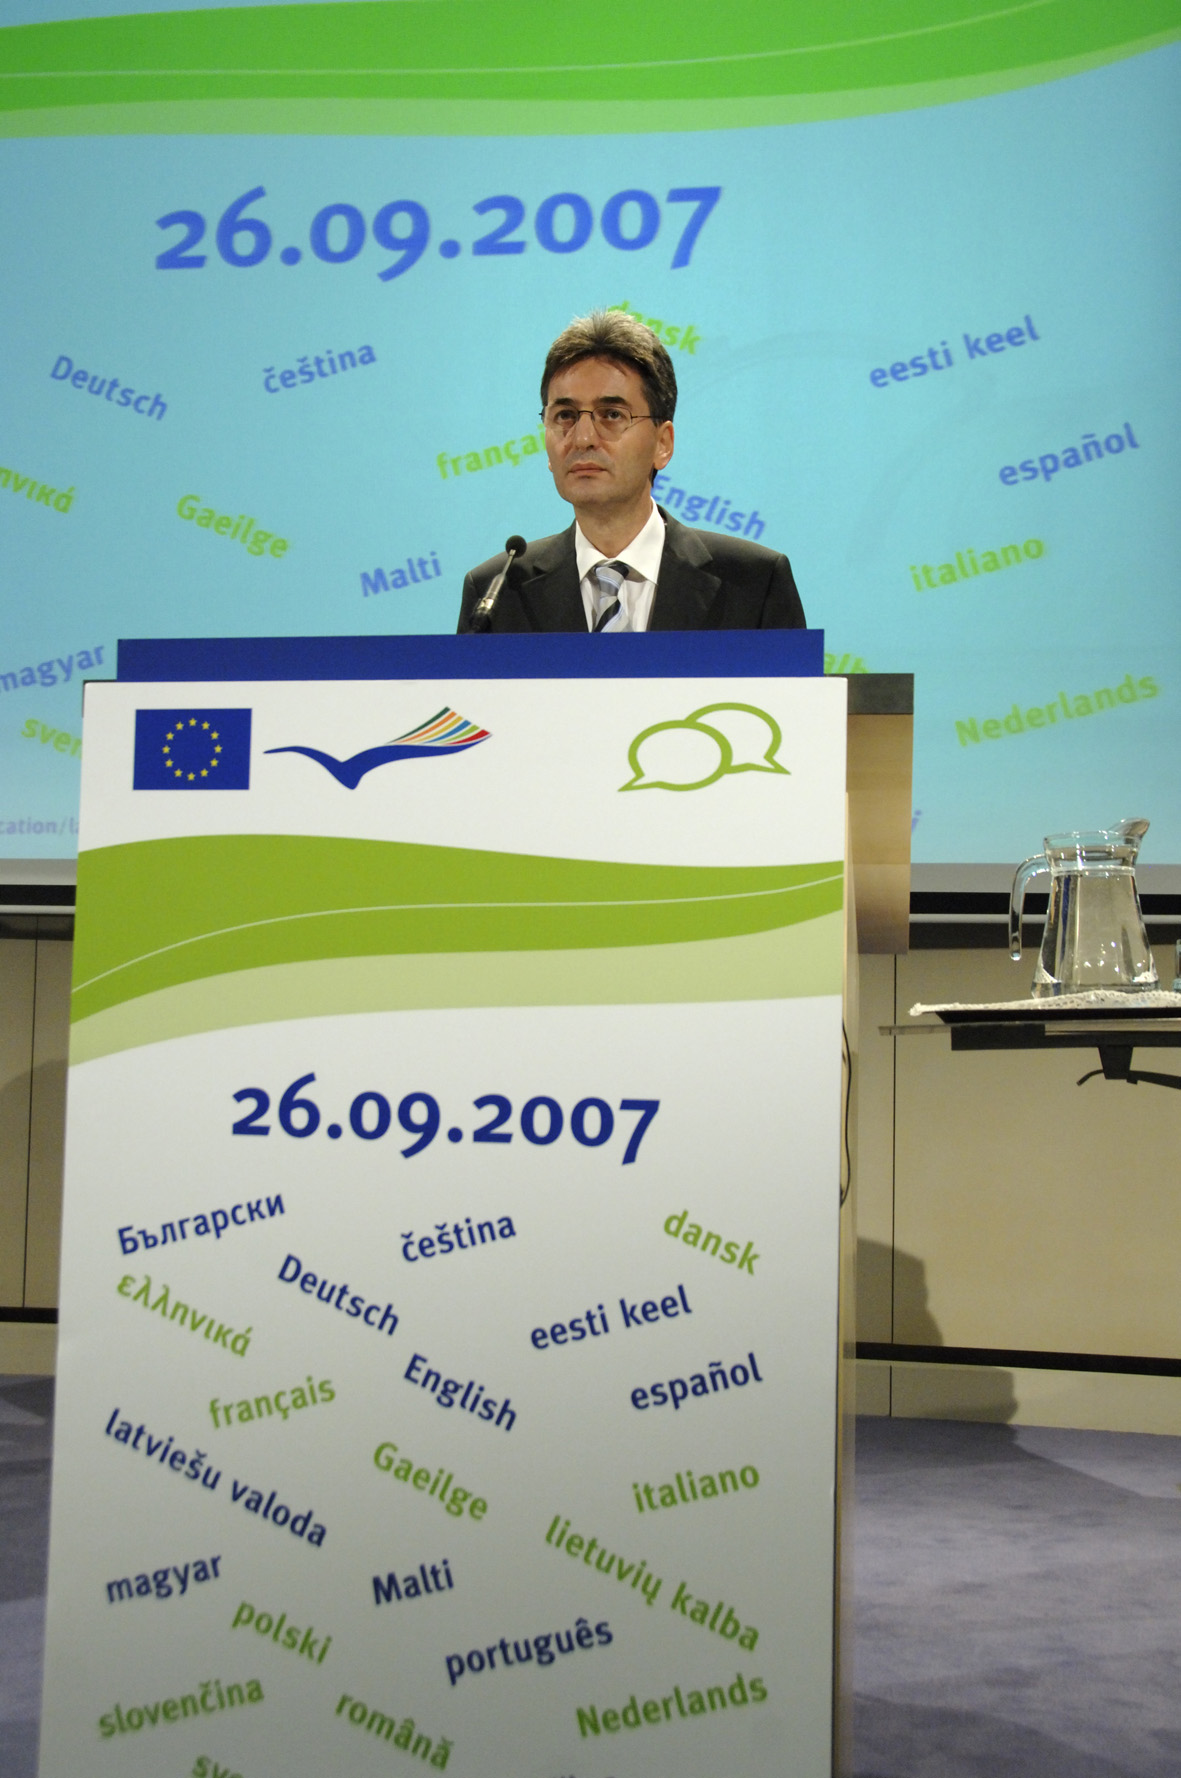 Press conference by Leonard Orban, Member of the EC, on the European Day of Languages